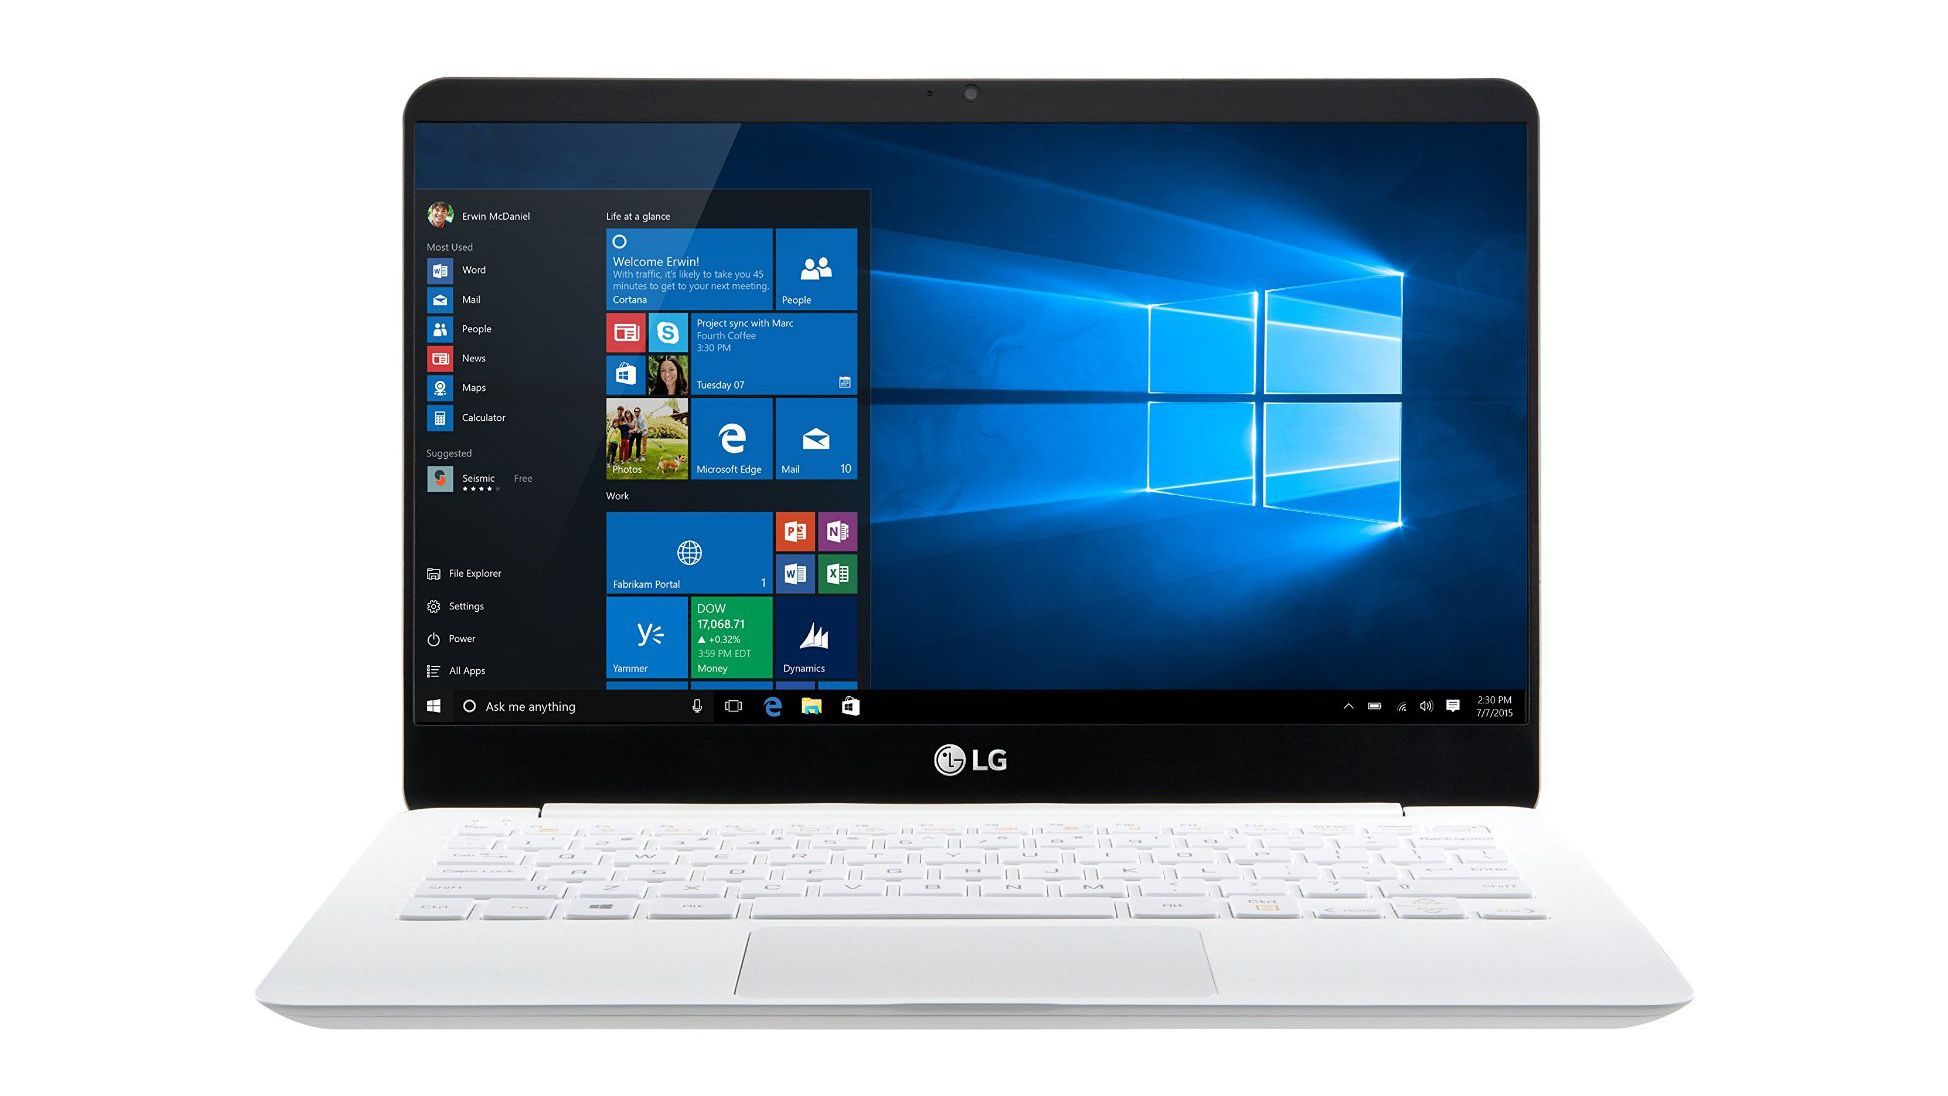 The Hottest Windows 10 Products to Get Your Hands On in